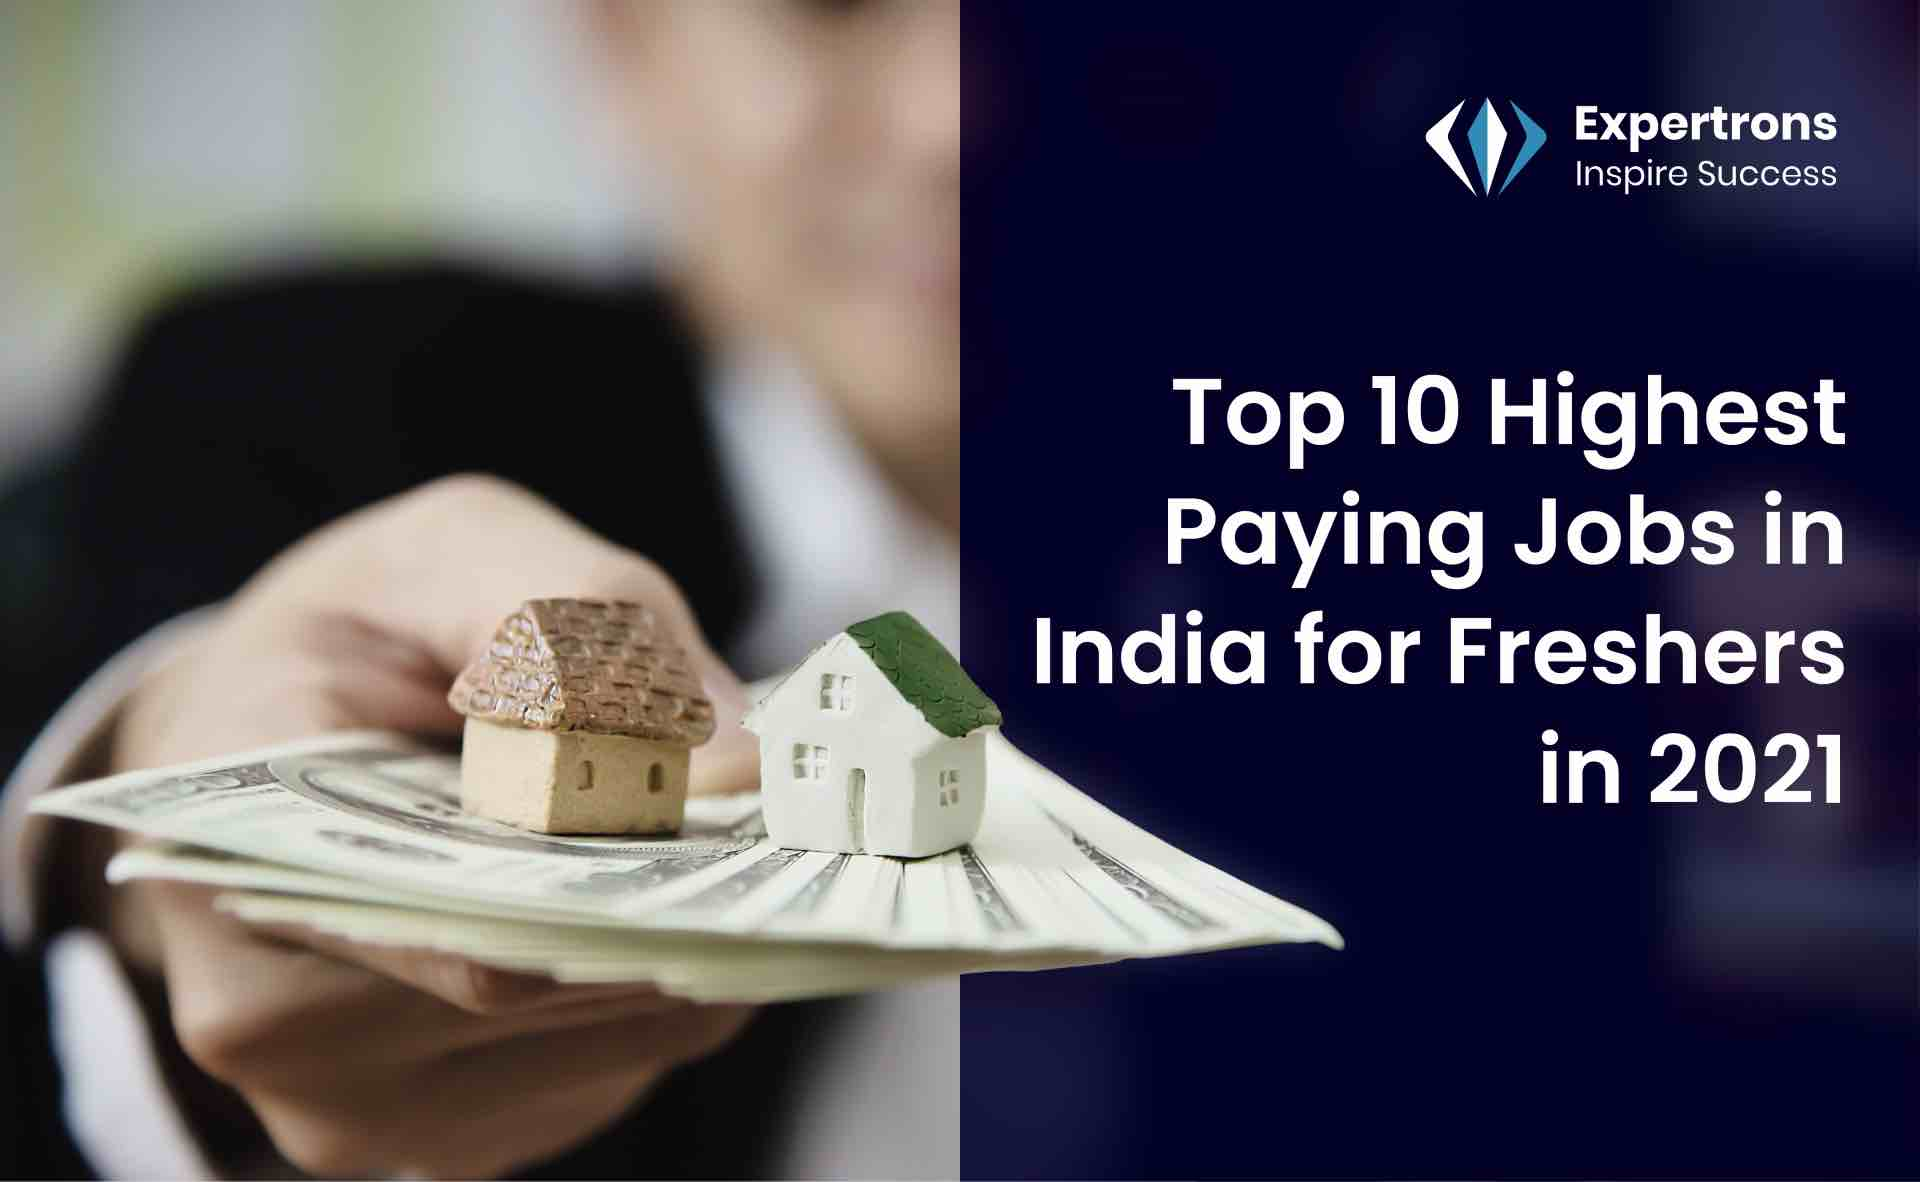 highest paying jobs in india for fresher, top 10 highest paying jobs in india, best paying jobs in india, highest paying companies in india for freshers